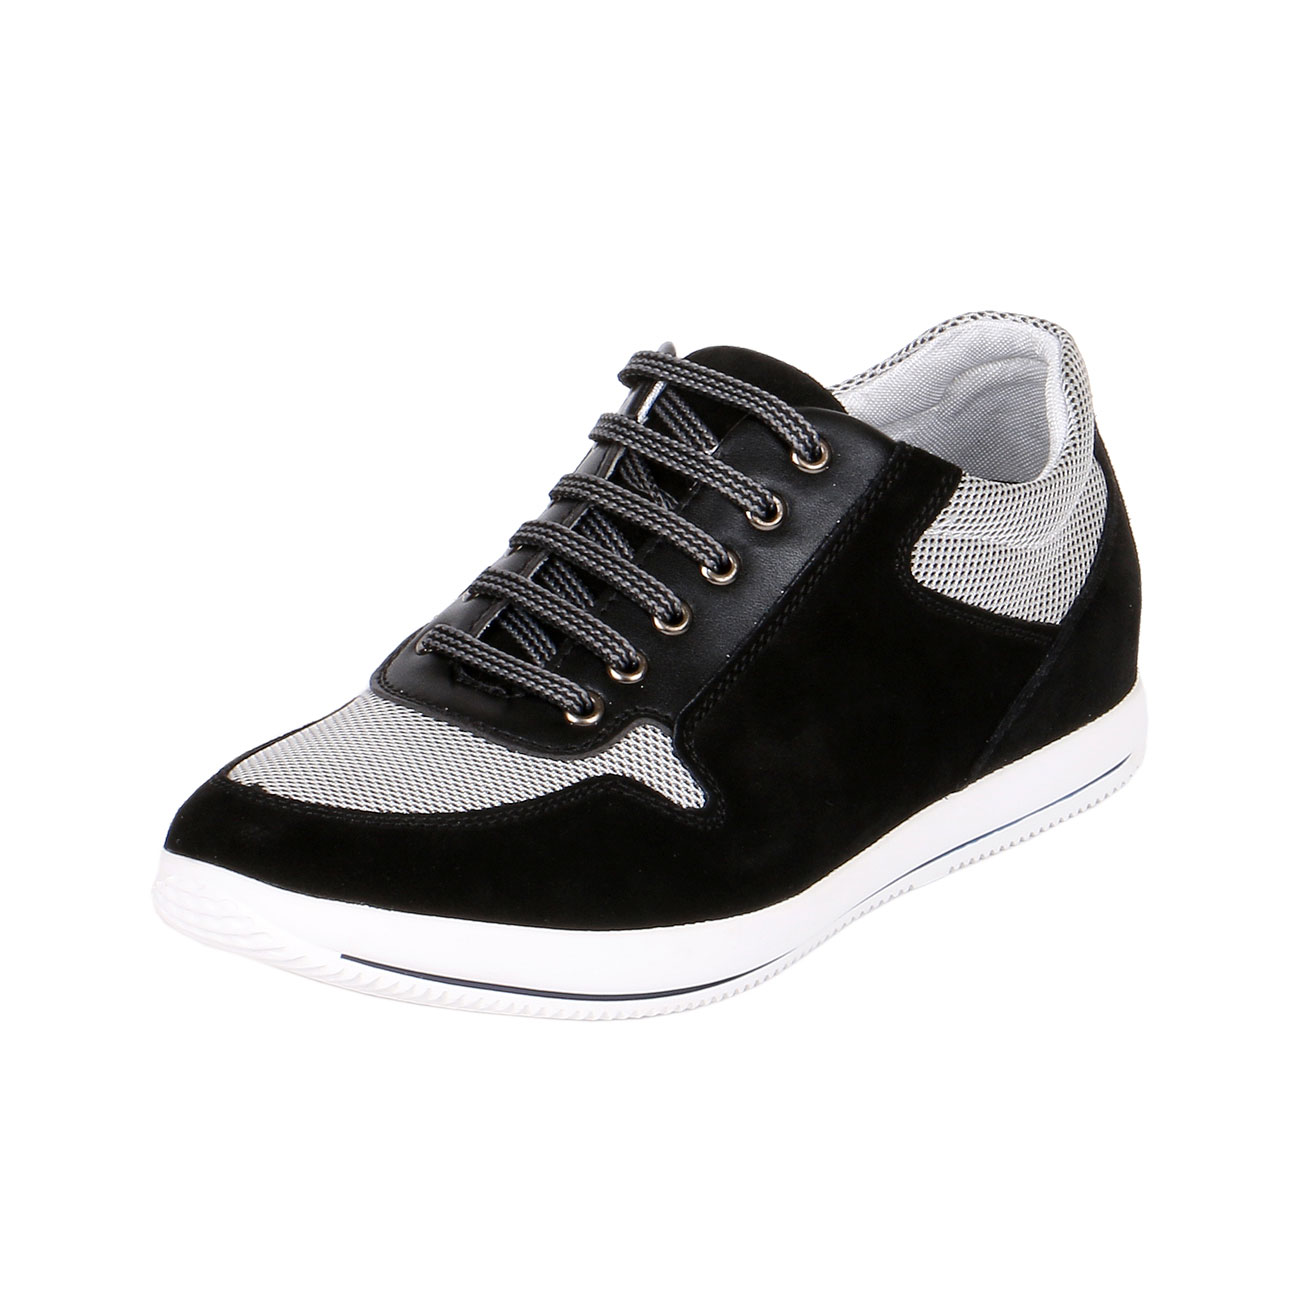 Men's Sneakers Adding Height-view1